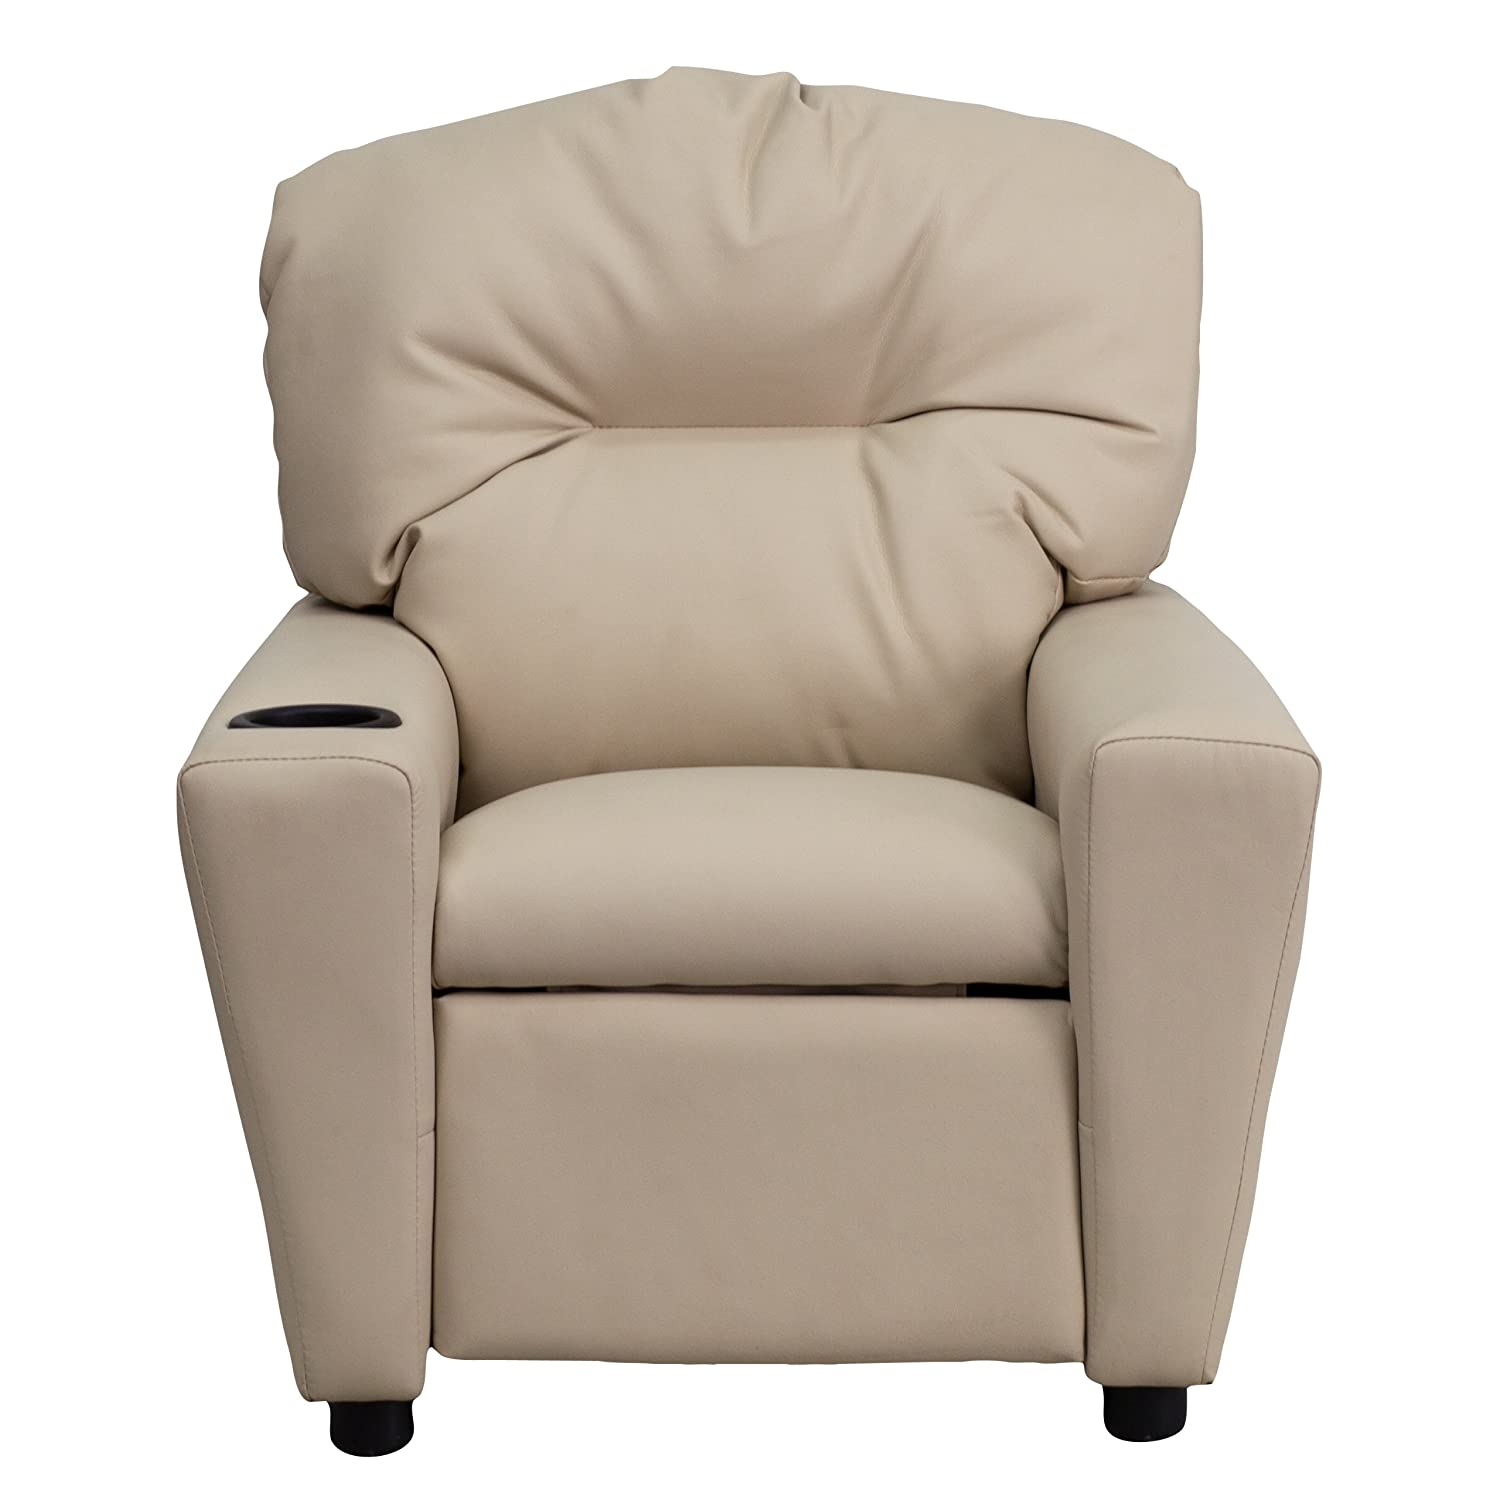 Amazon.com Flash Furniture Contemporary Beige Vinyl Kids Recliner with Cup Holder Kitchen u0026 Dining  sc 1 st  Amazon.com : kid recliner chair - islam-shia.org